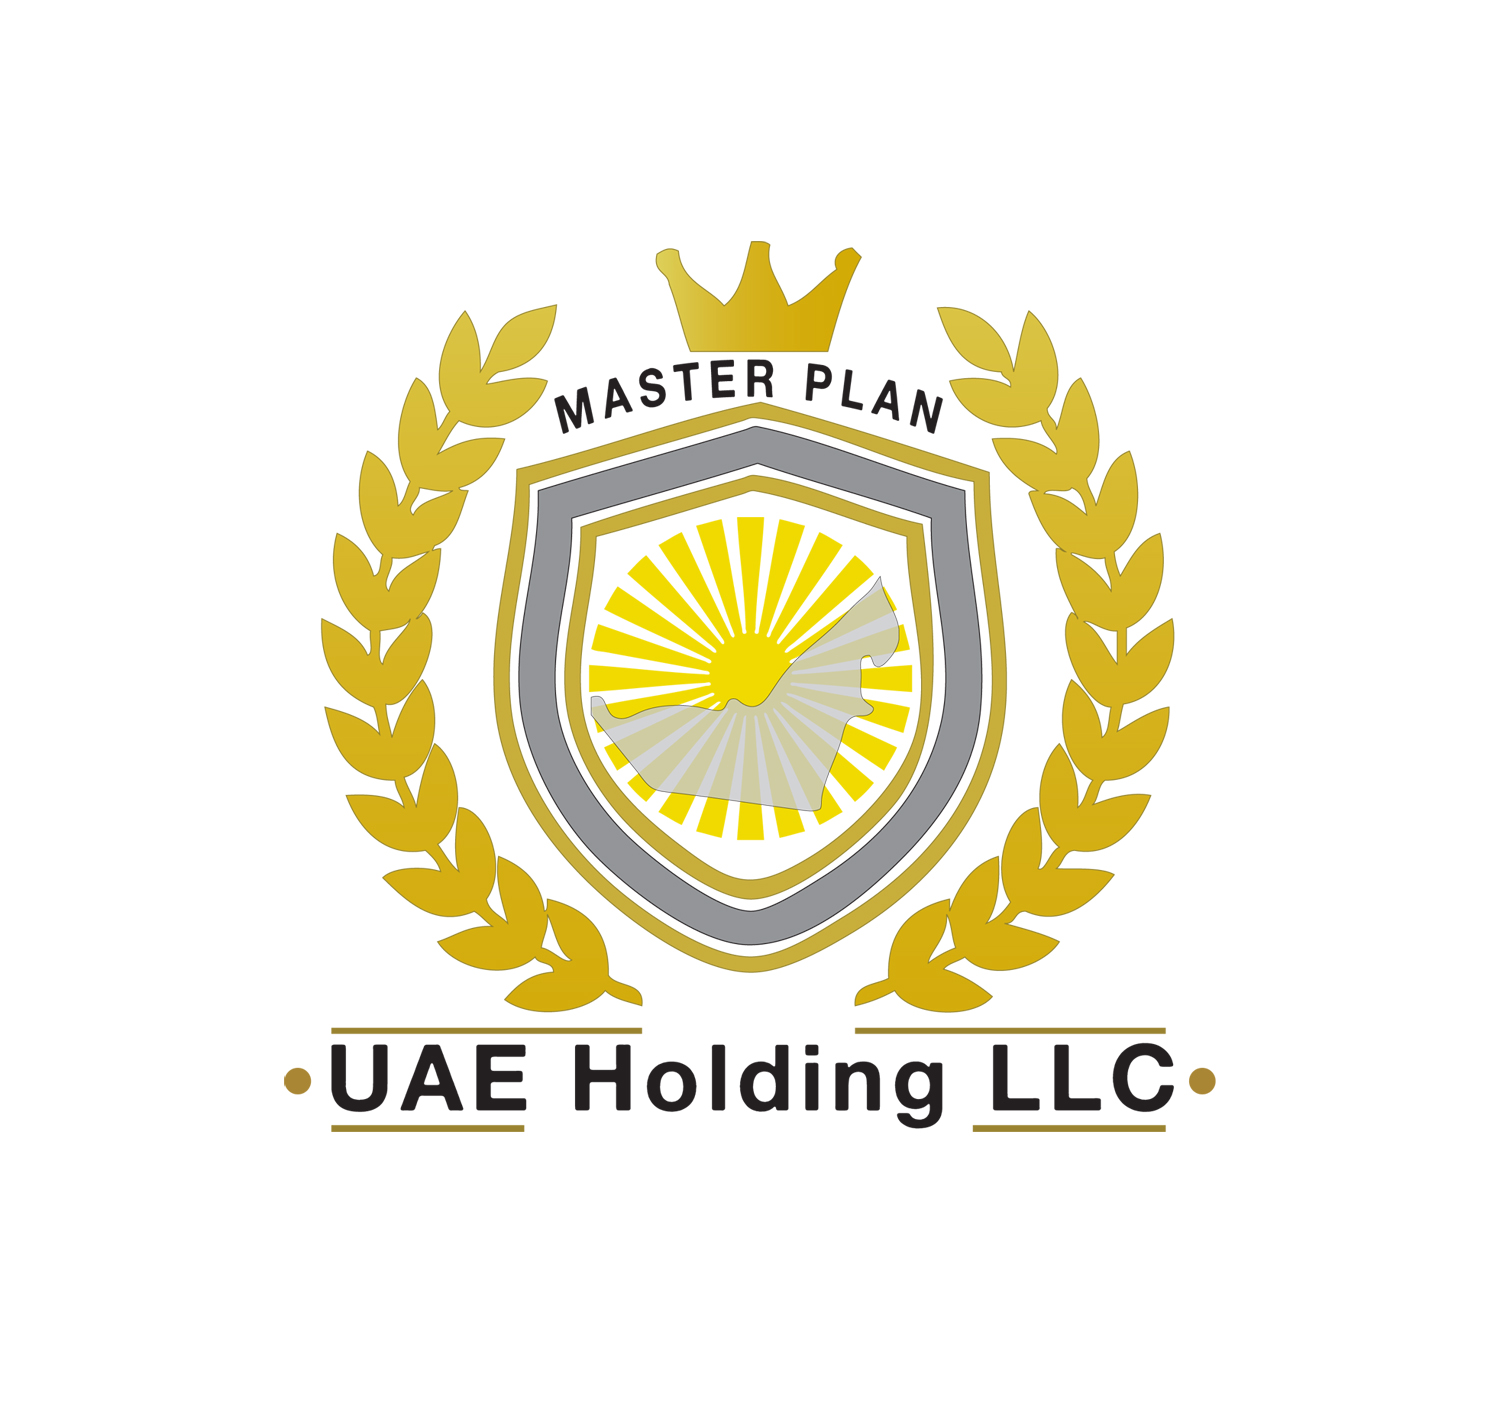 Logo Design By Afaraz667 For This Project - Design #18912879